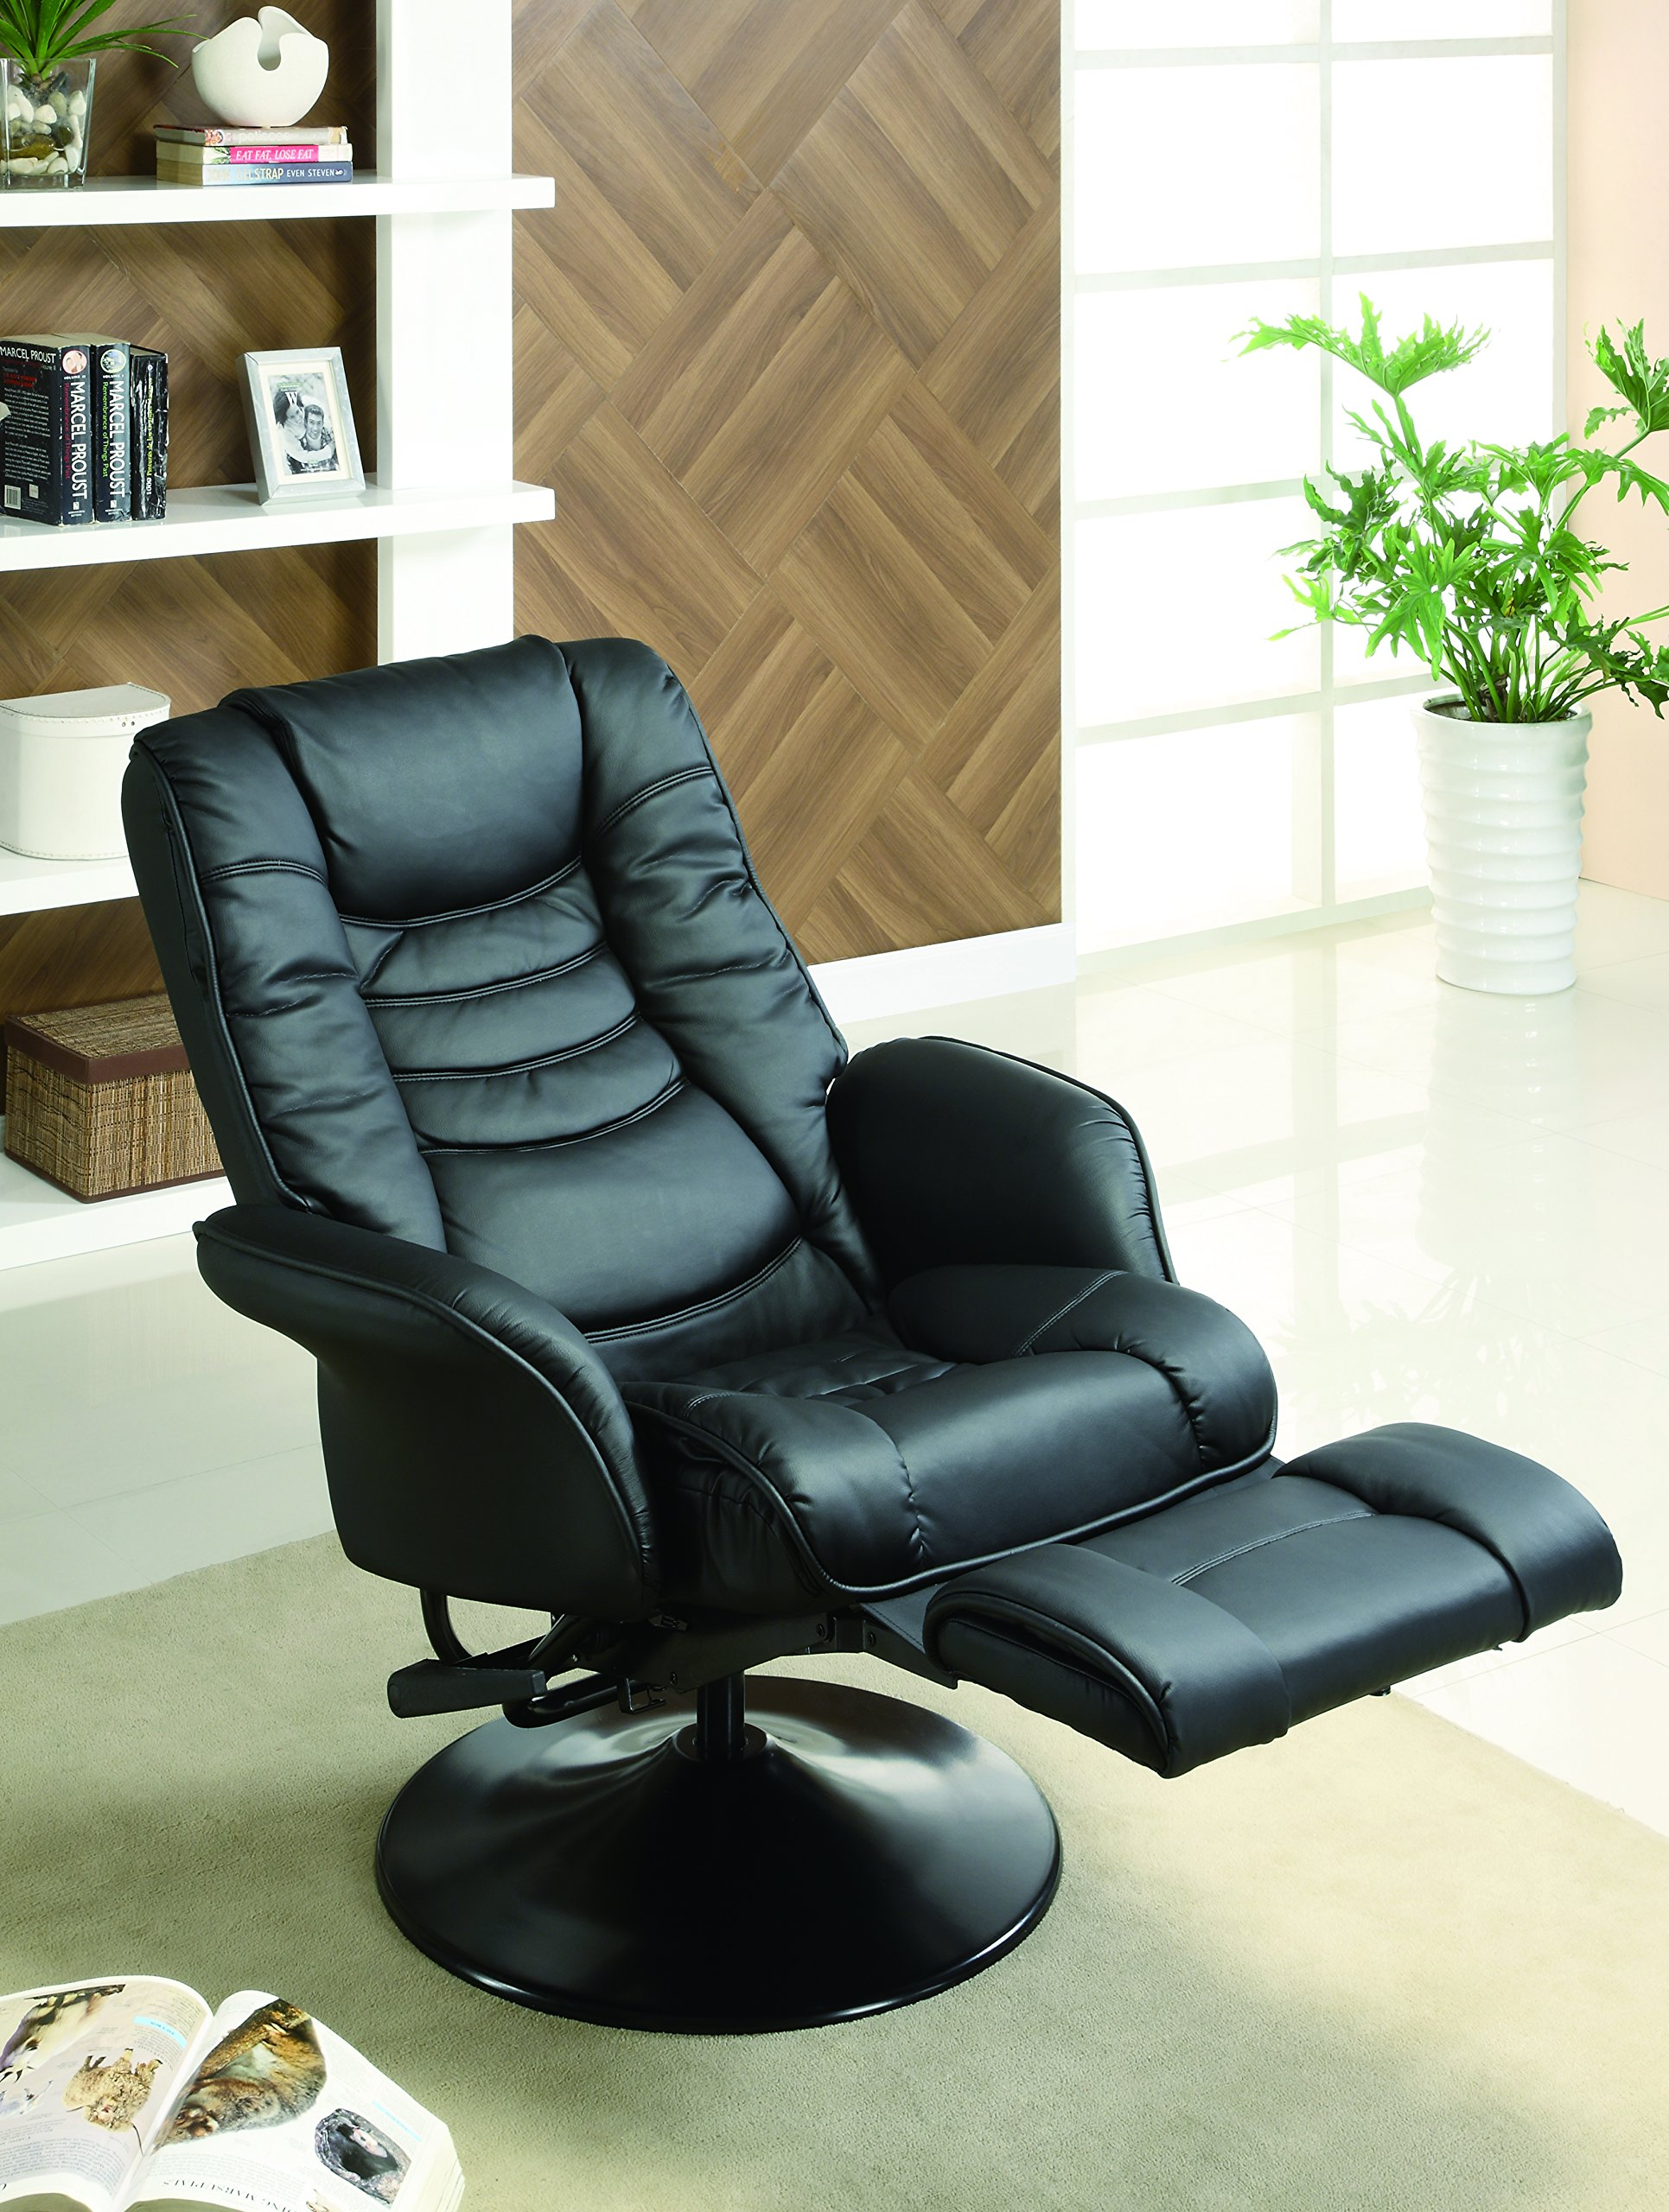 Coaster Home Furnishings 600229 Recliners Casual Leatherette Swivel Recliner, Black by Coaster Home Furnishings